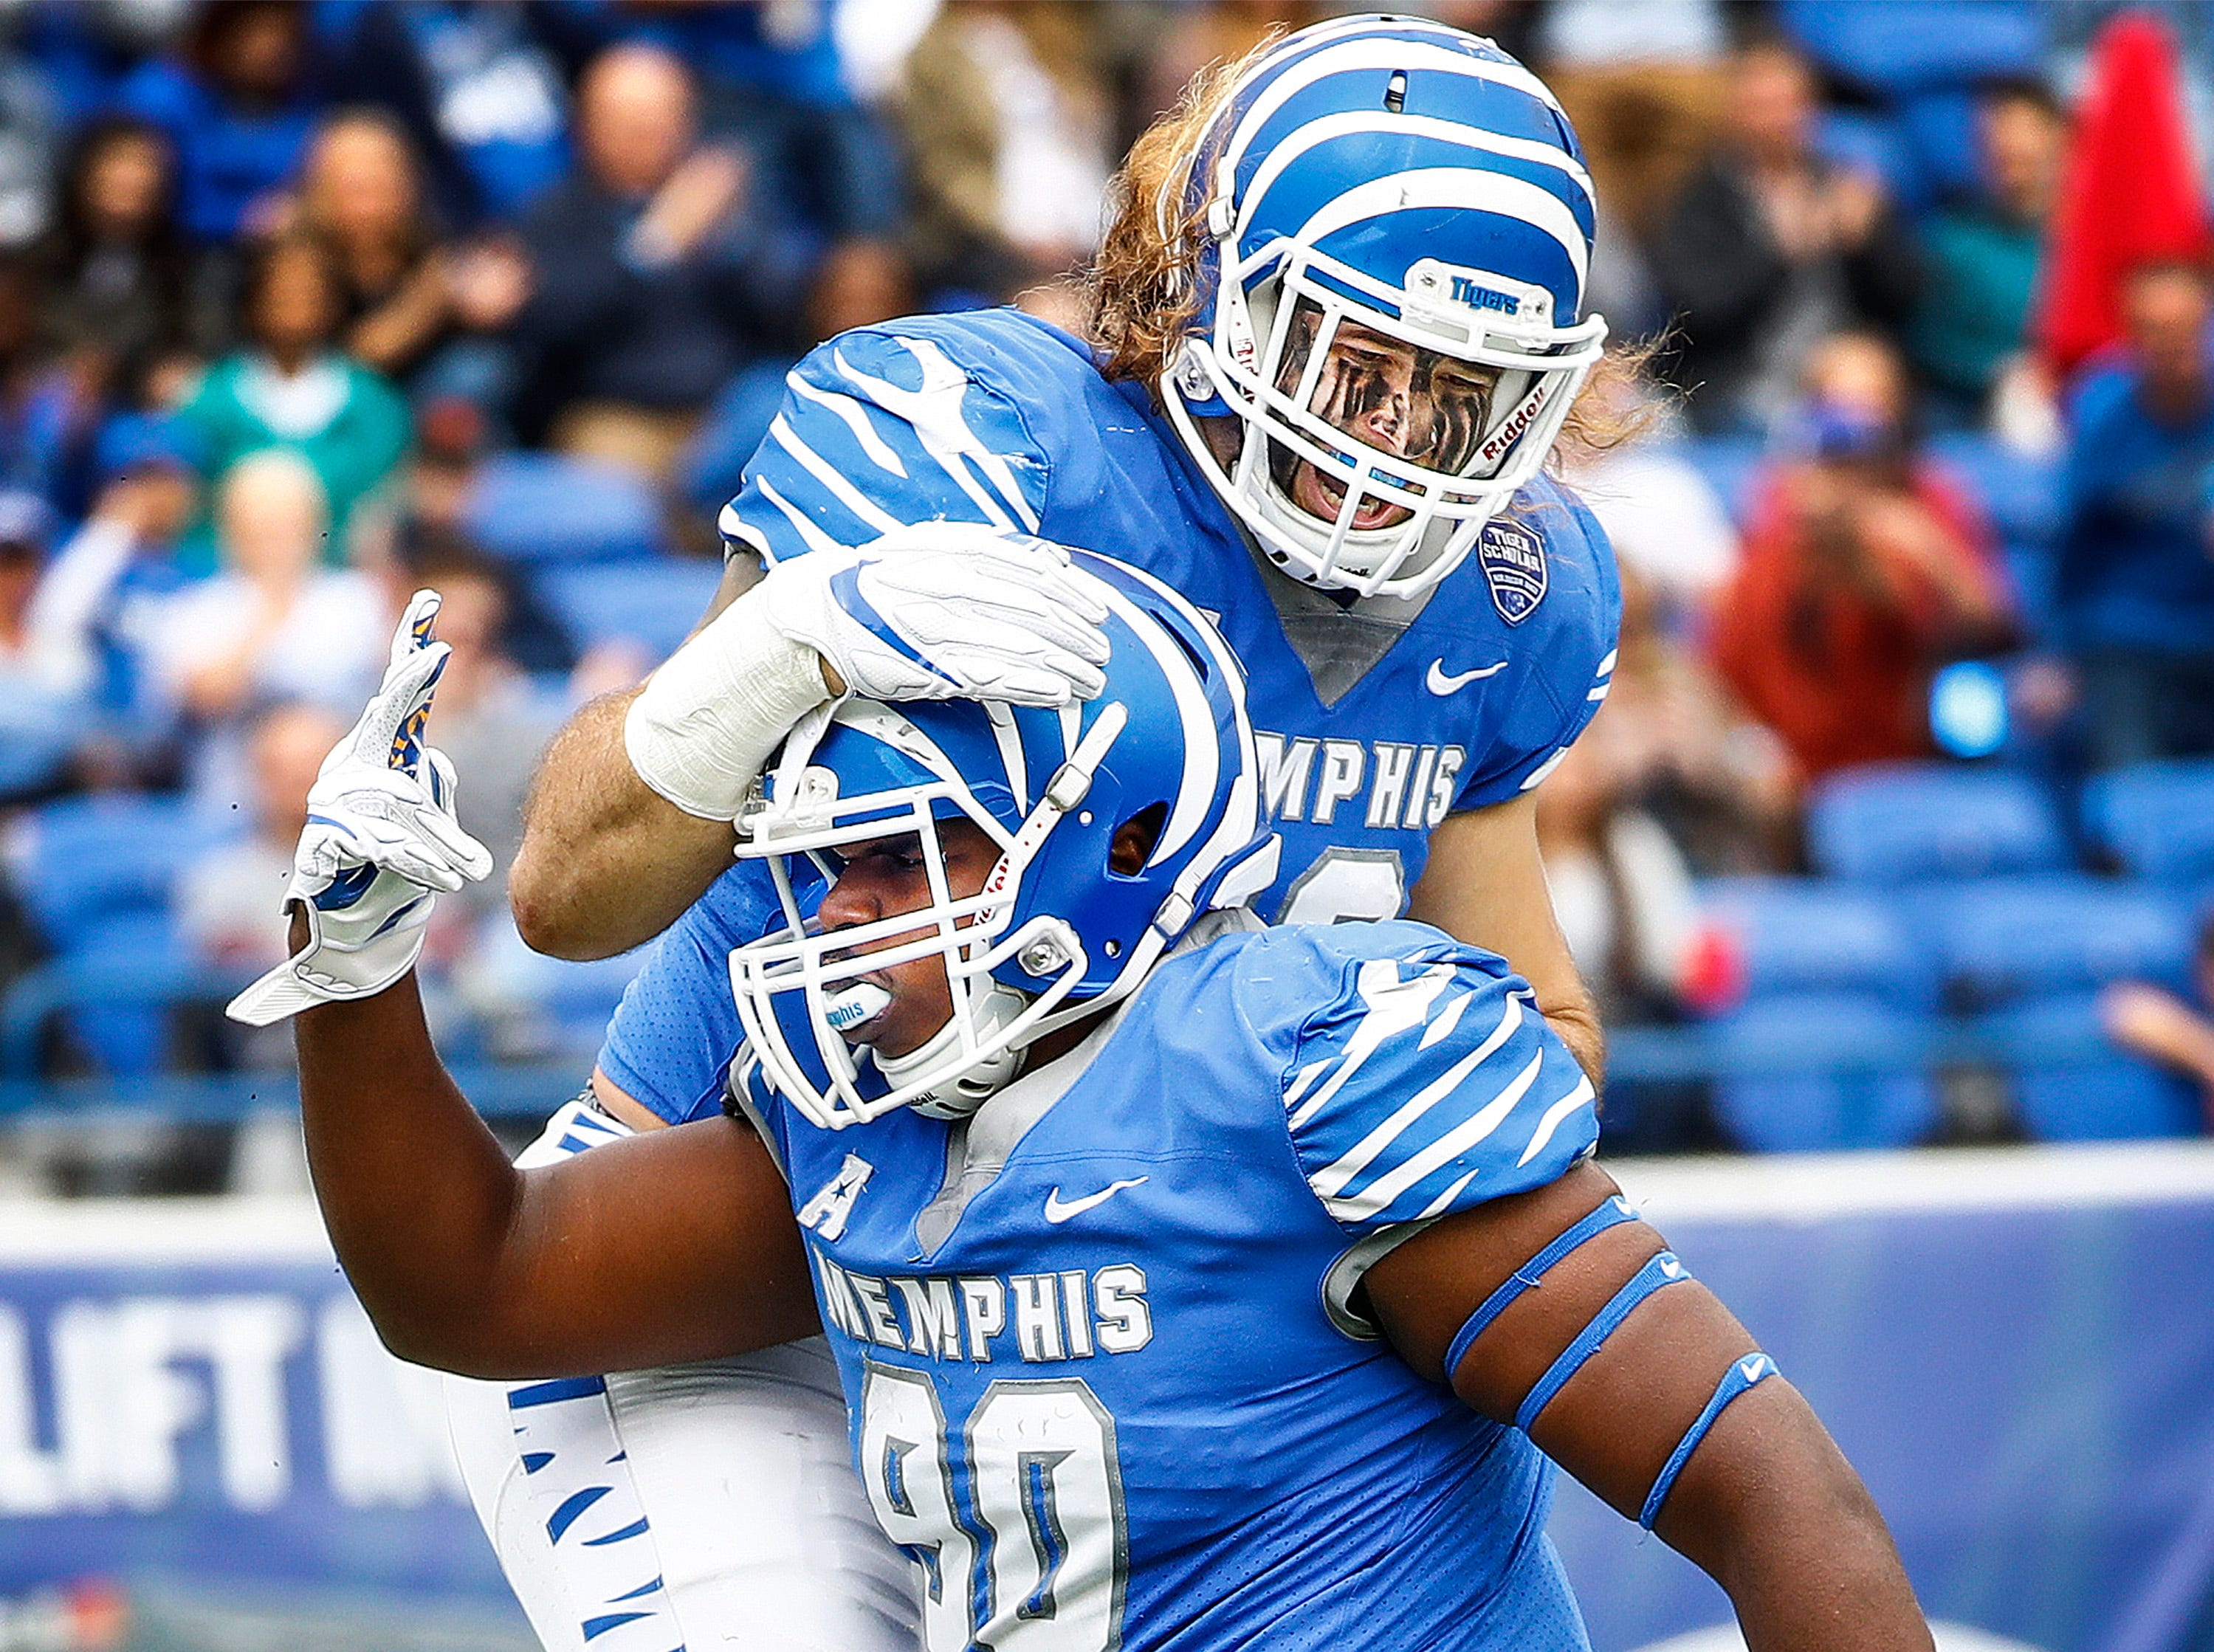 Memphis defender John Tate IV (bottom) celebrates his second sack with teammate Jonathan Wilson (top)Central Florida during action in Memphis, Tenn., Saturday, October 13, 2018.